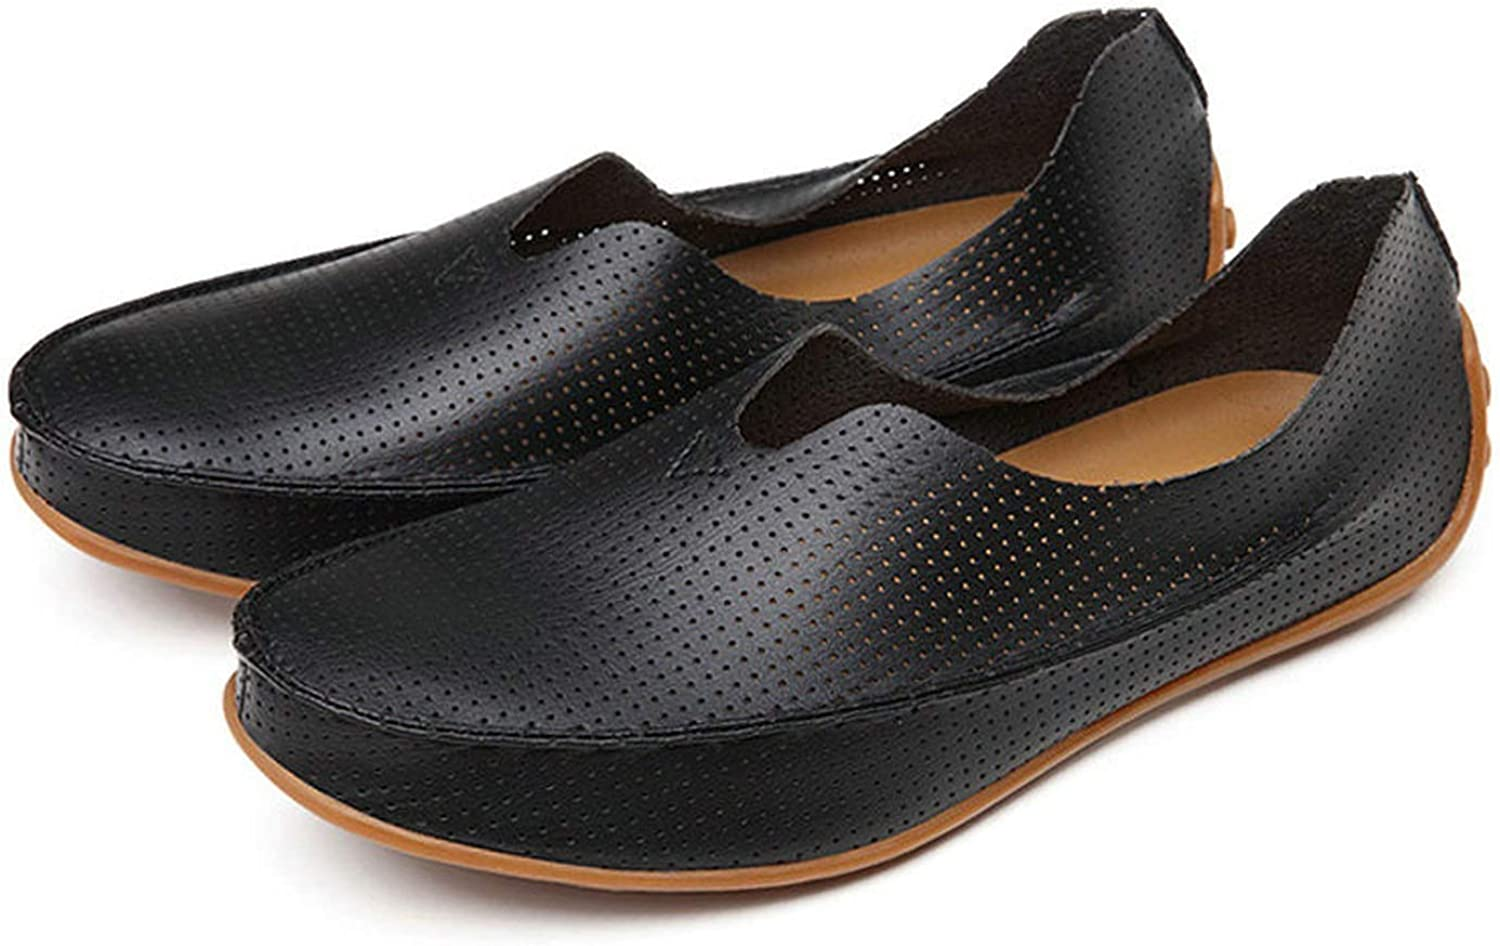 Hollow Out Breathable Summer Split Leather Casual Shoes Men Lovers Couple Flat Loafer Shoes,108 Black,6.5